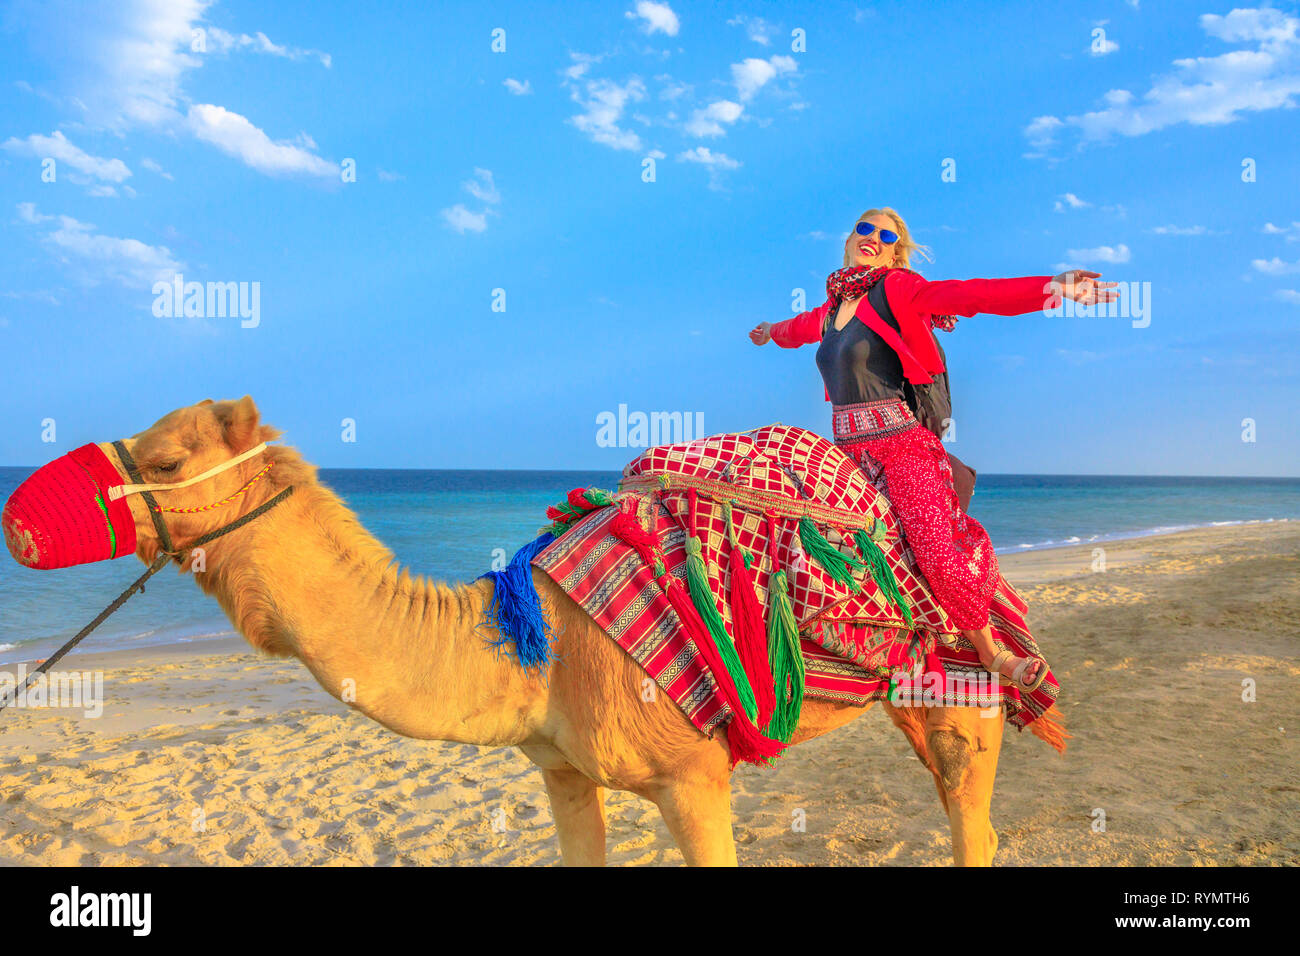 Inland sea is a major tourist destination for Qatar. Freedom woman riding camel on beach at Khor al Udaid in Persian Gulf. Caucasian blonde tourist - Stock Image